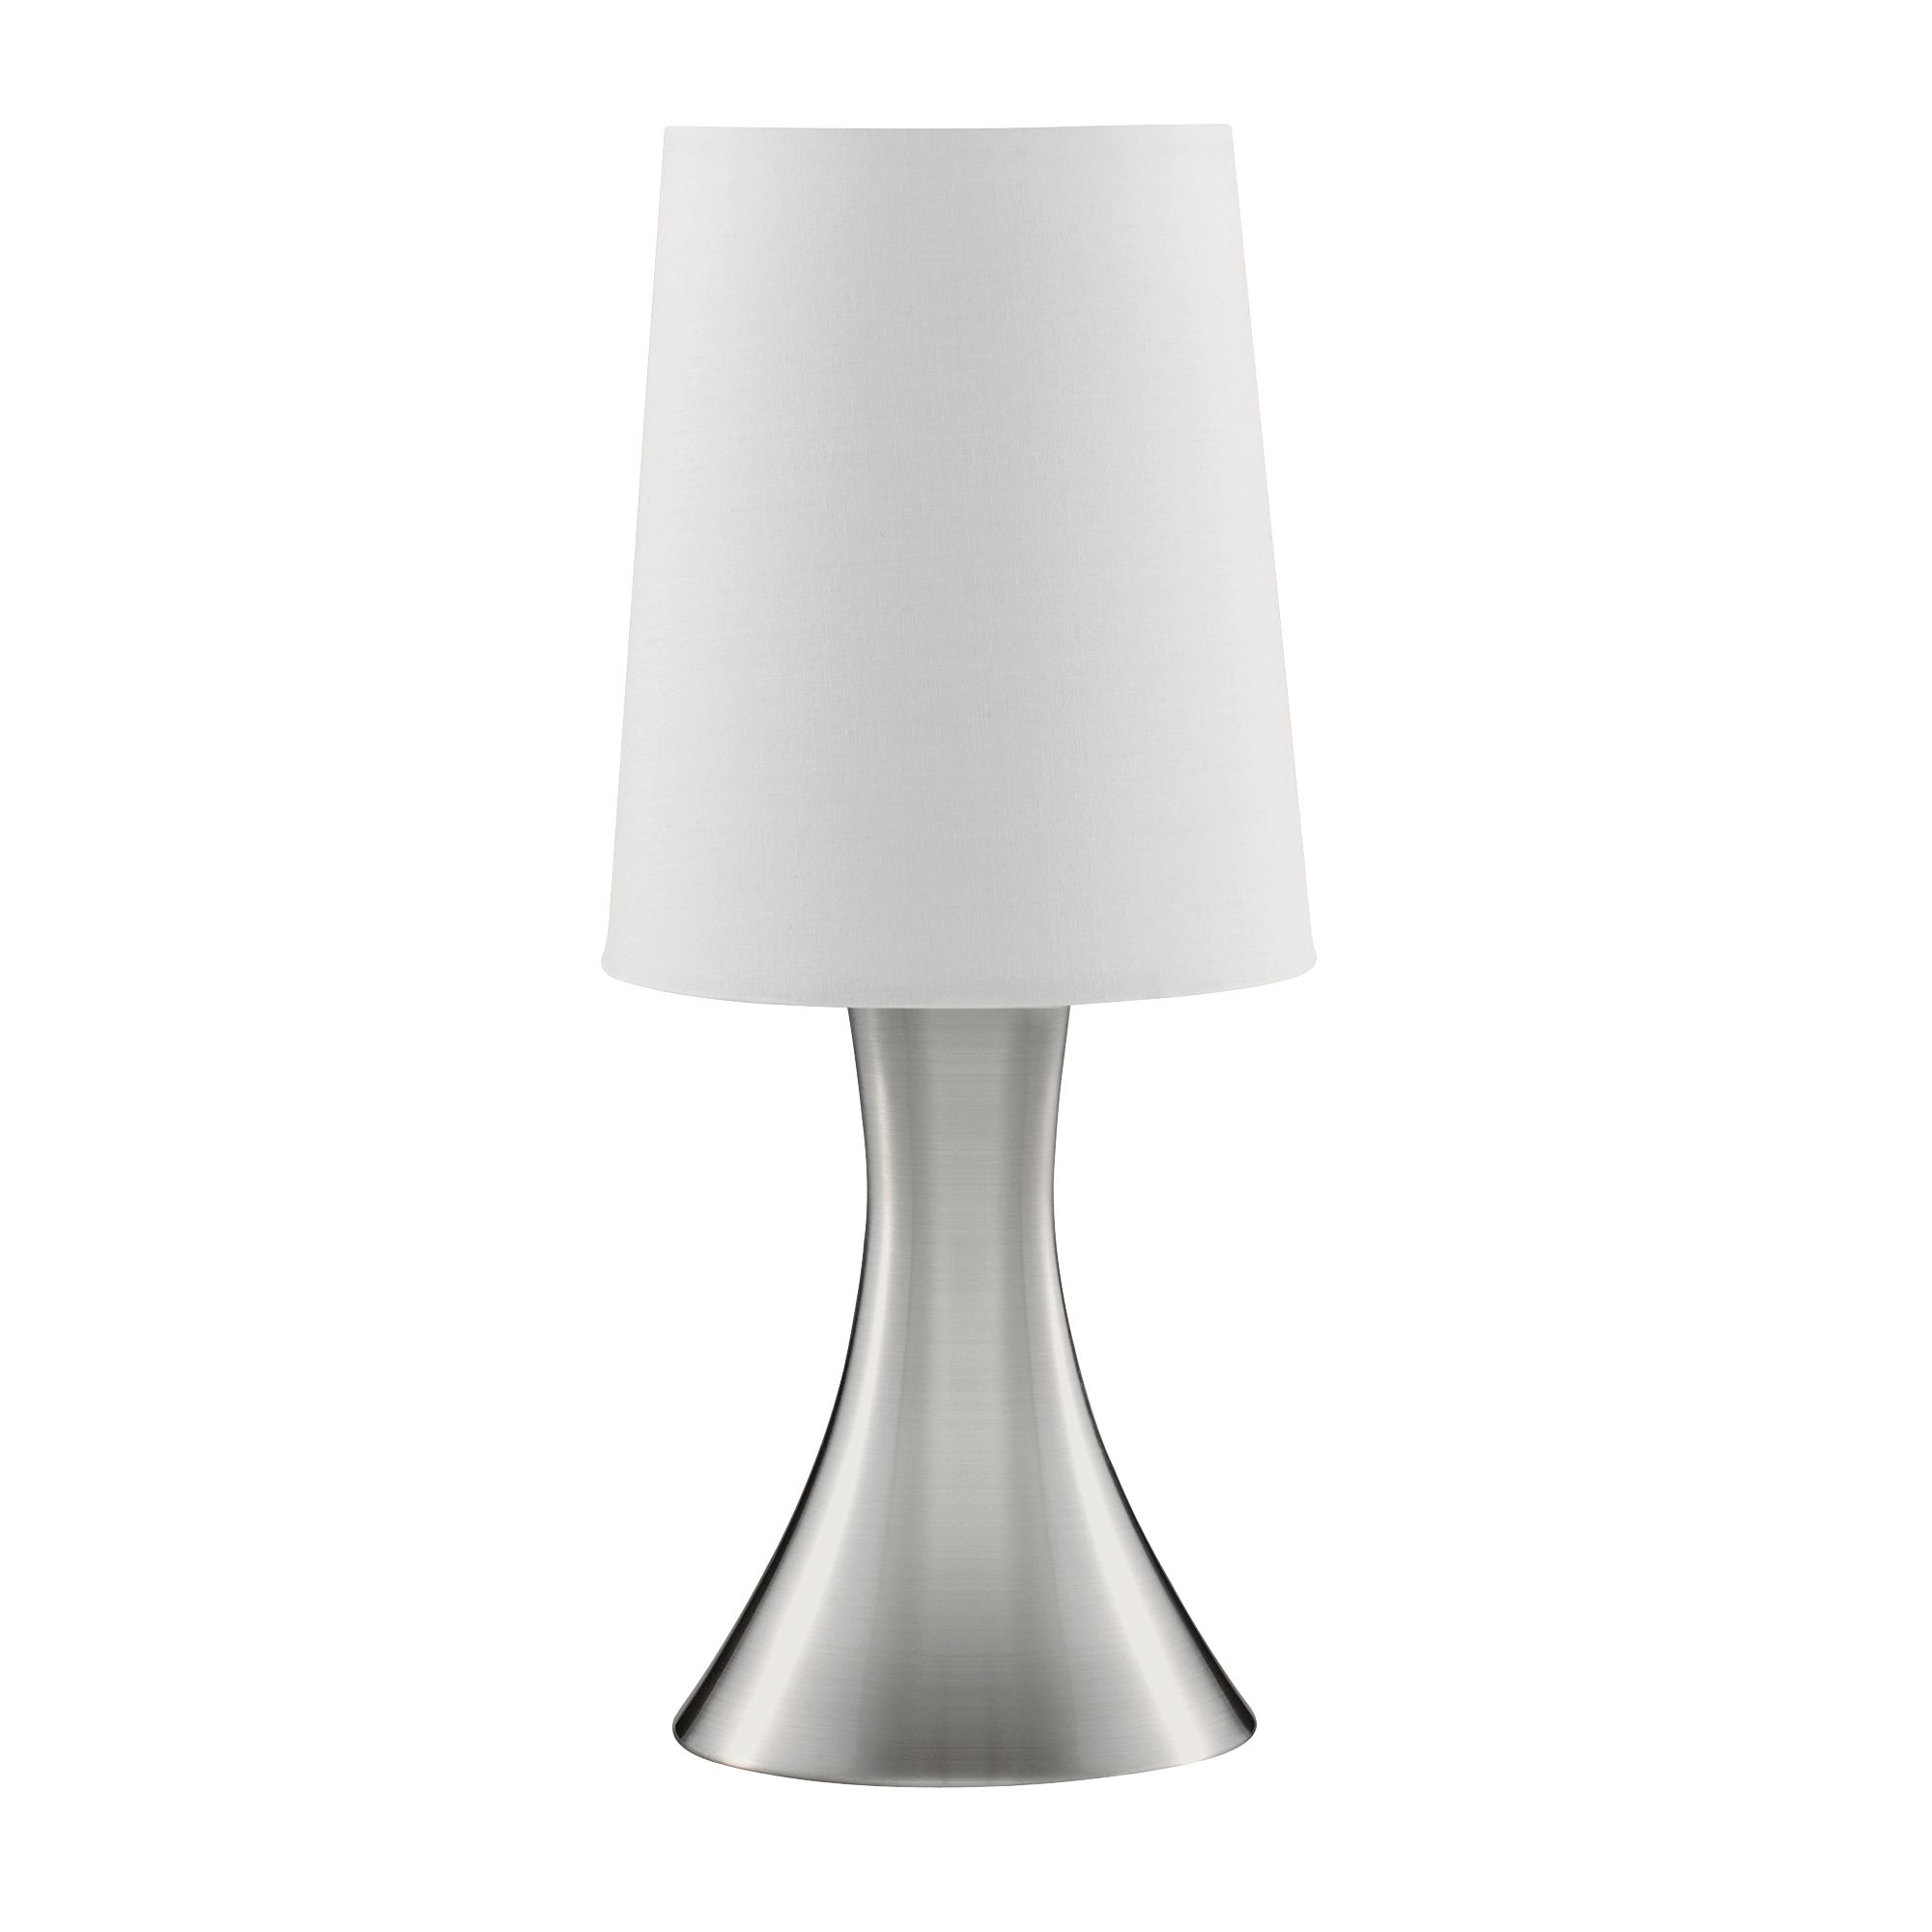 Satin Silver Touch Table Lamp With White Fabric Shade